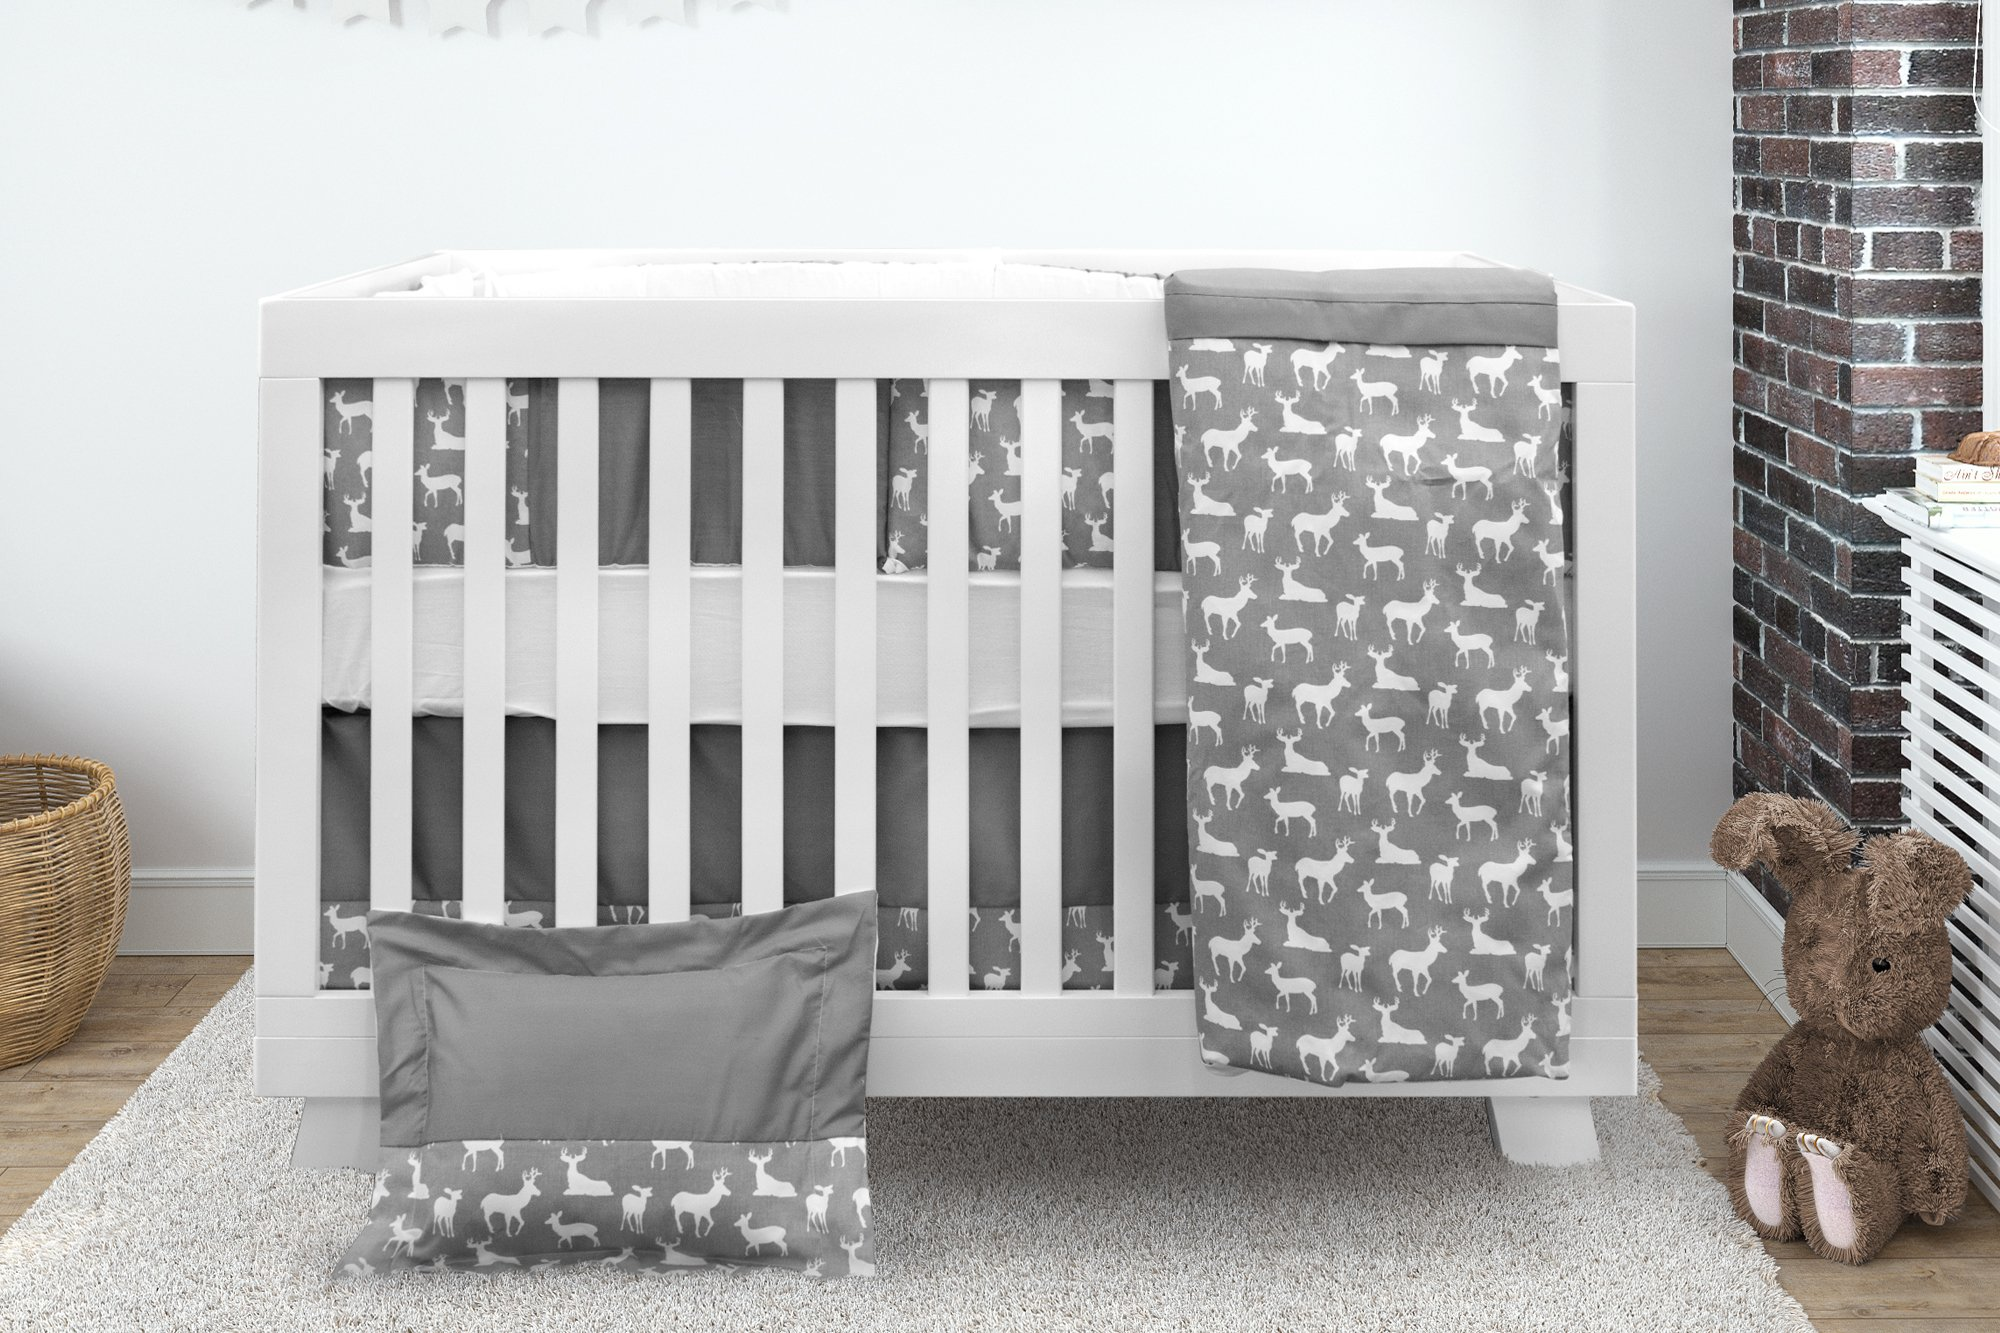 Bebelelo Baby Crib Bedding 7 Piece Set, Gray Deer Design, Includes Fitted Sheet, Crib Comforter, Comforter Cover, Skirt, Bumper, Pillow Cover and Pillow, Perfect for Baby Girls and Boys